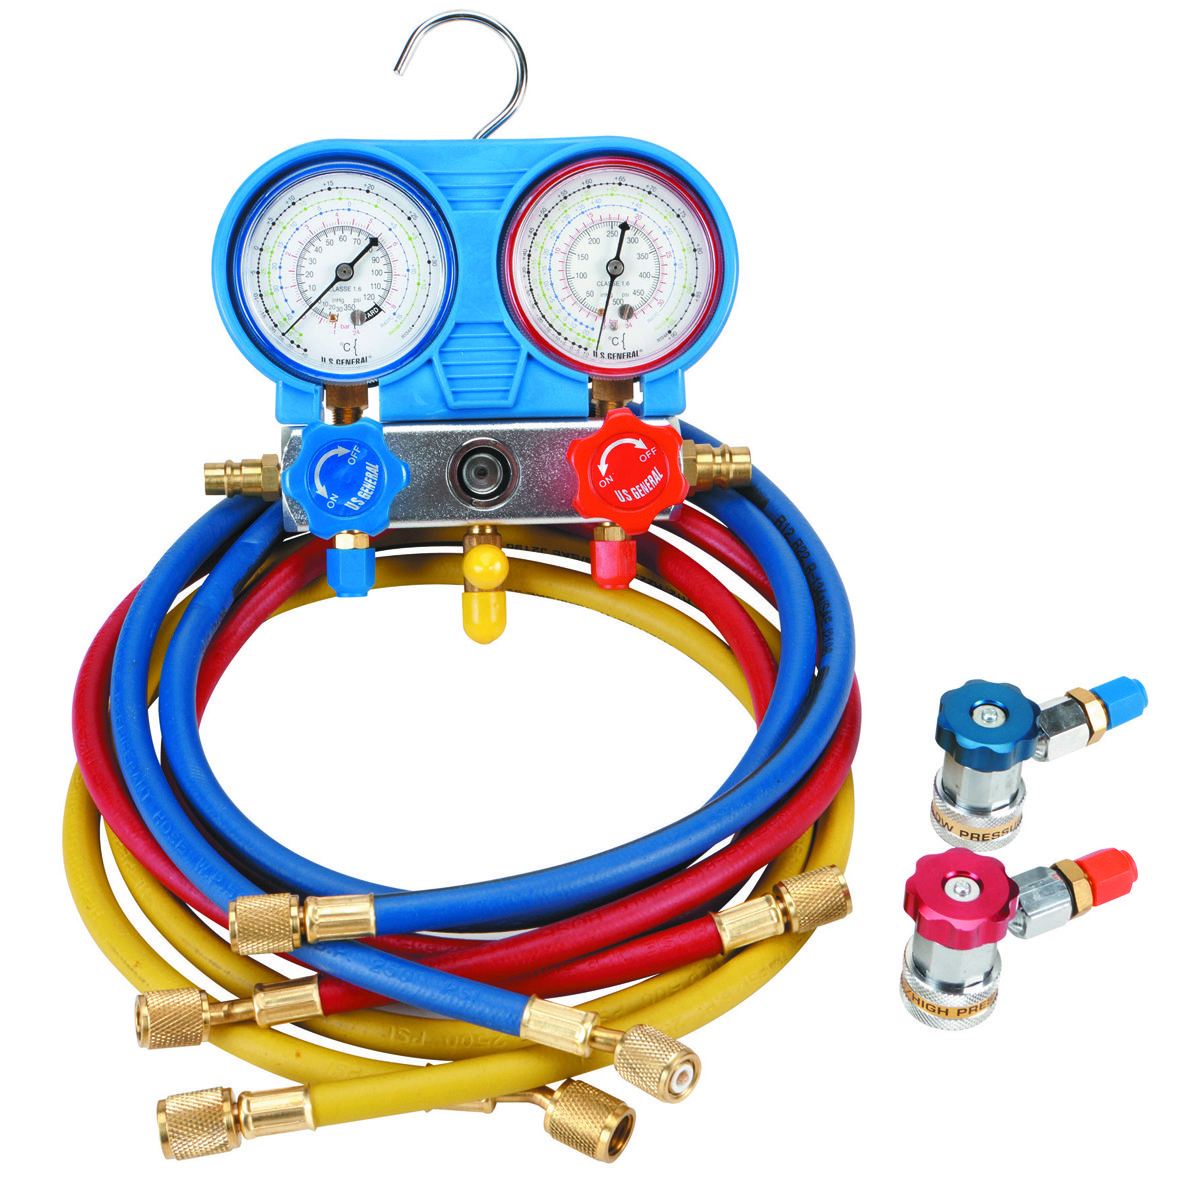 A C R134a Manifold Gauge Set Refrigeration And Air Conditioning Car Air Conditioning Vacuum Pump